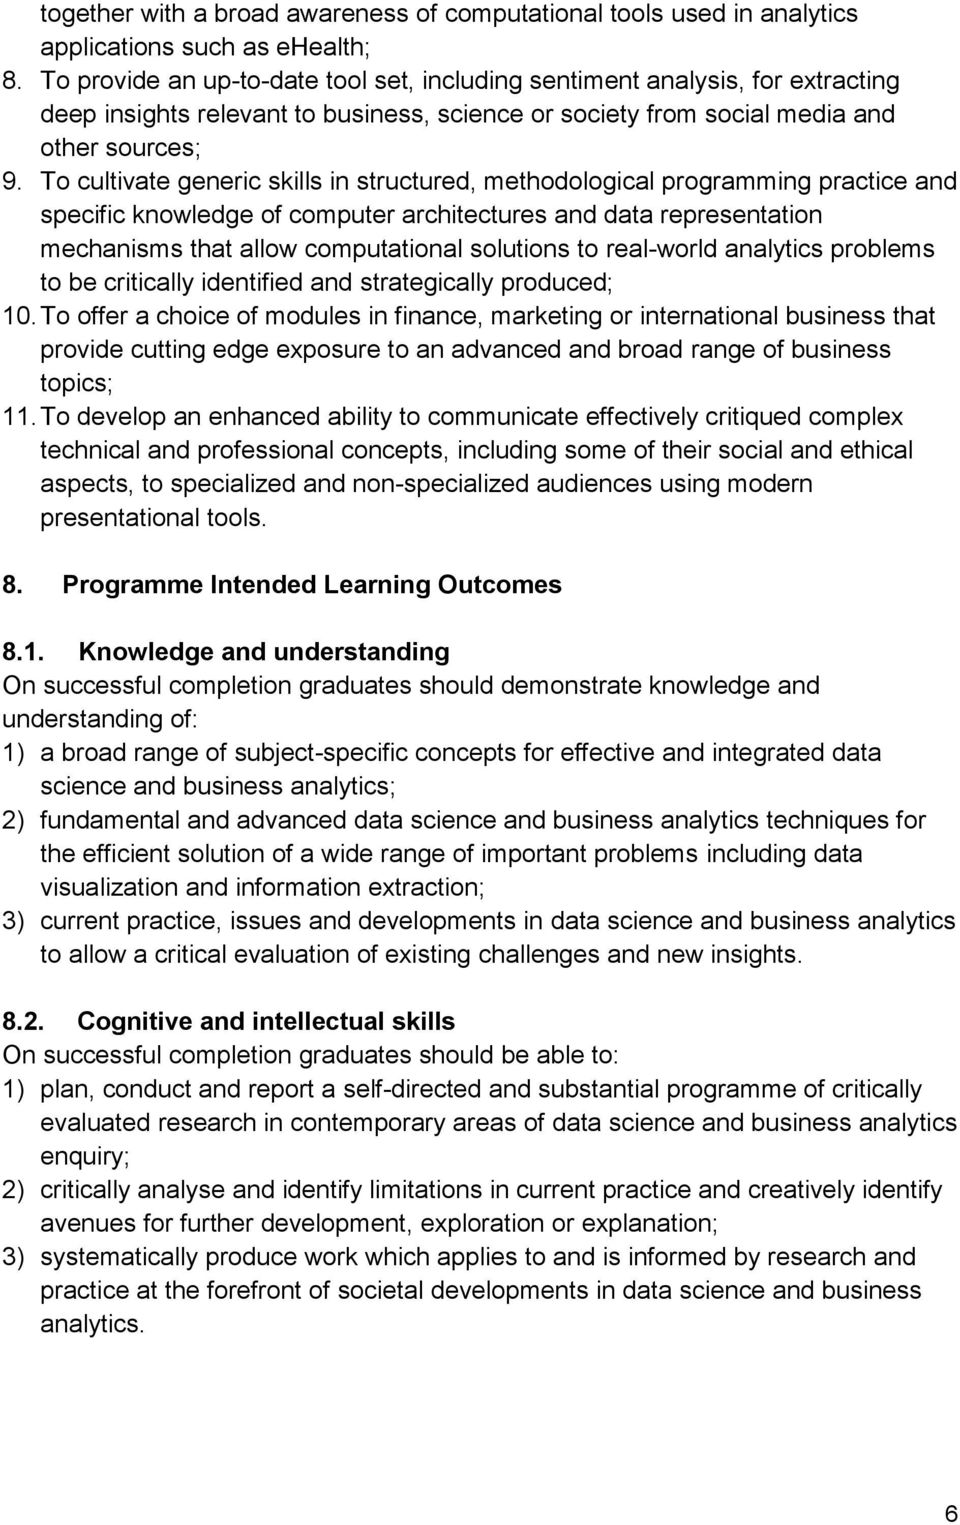 To cultivate generic skills in structured, methodological programming practice and specific knowledge of computer architectures and data representation mechanisms that allow computational solutions